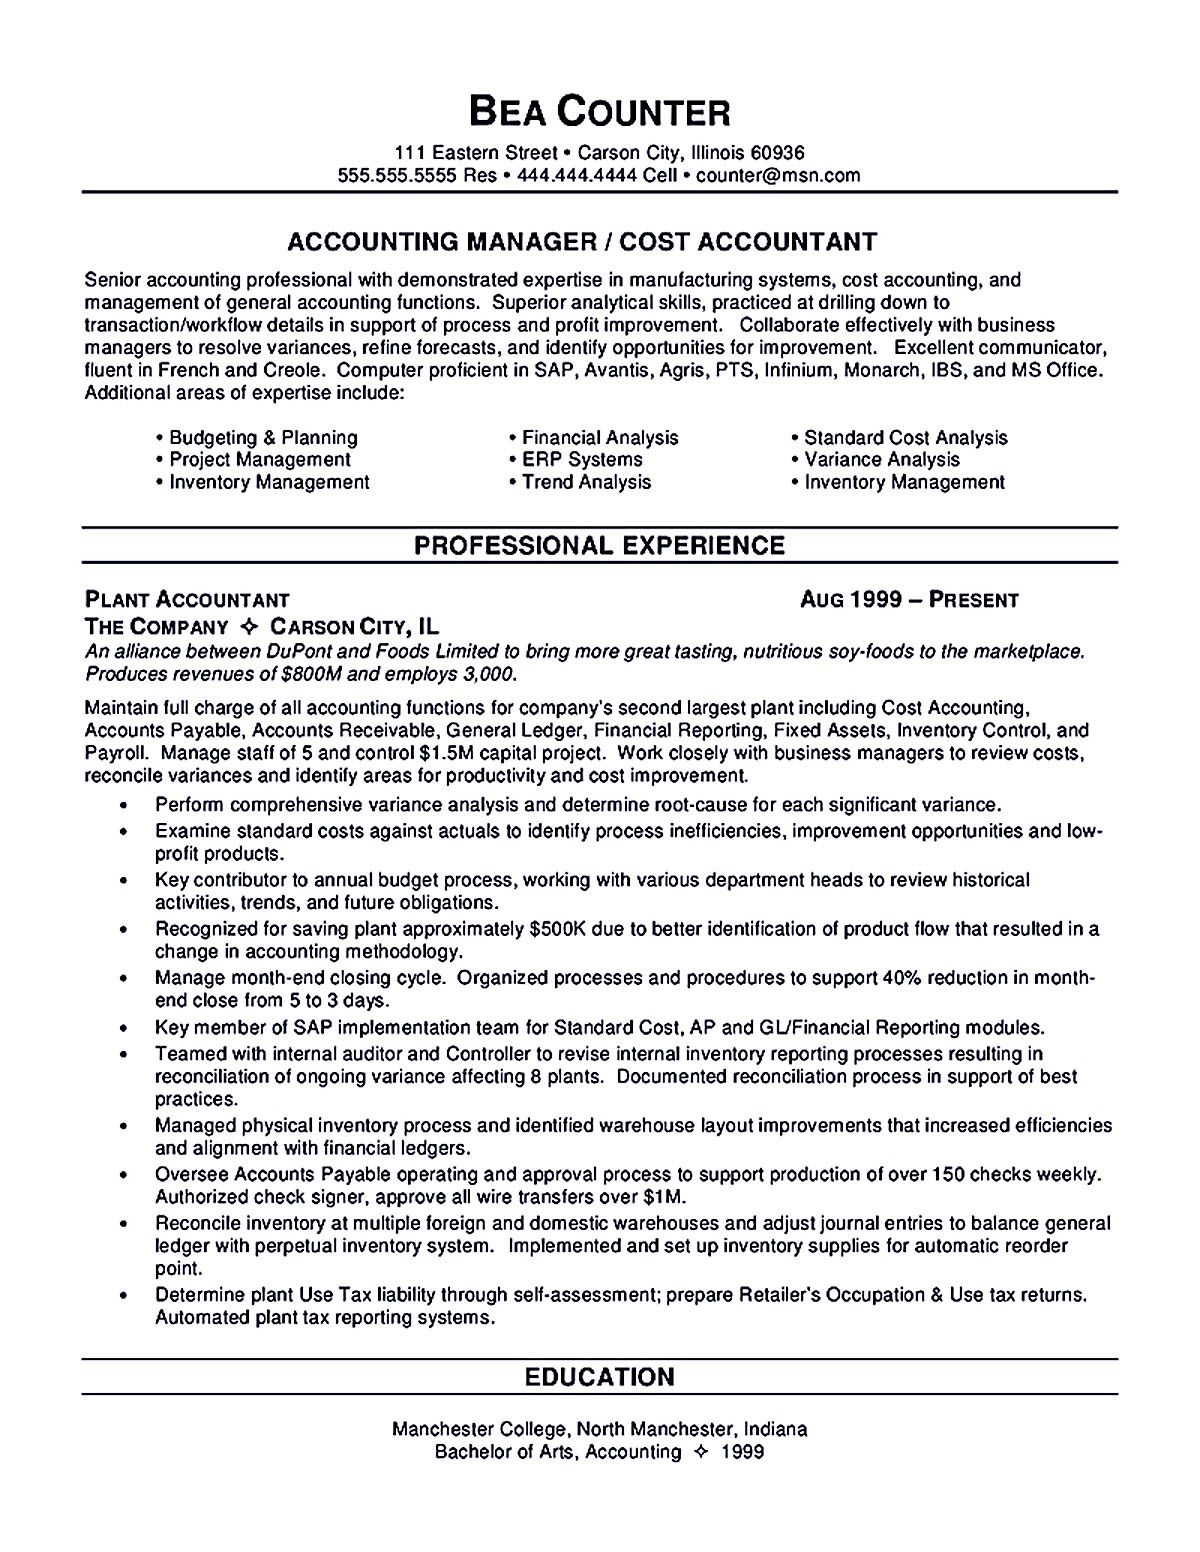 Accounting Resume Template Accounts Payable Resume Template Accountant Resume Template Here